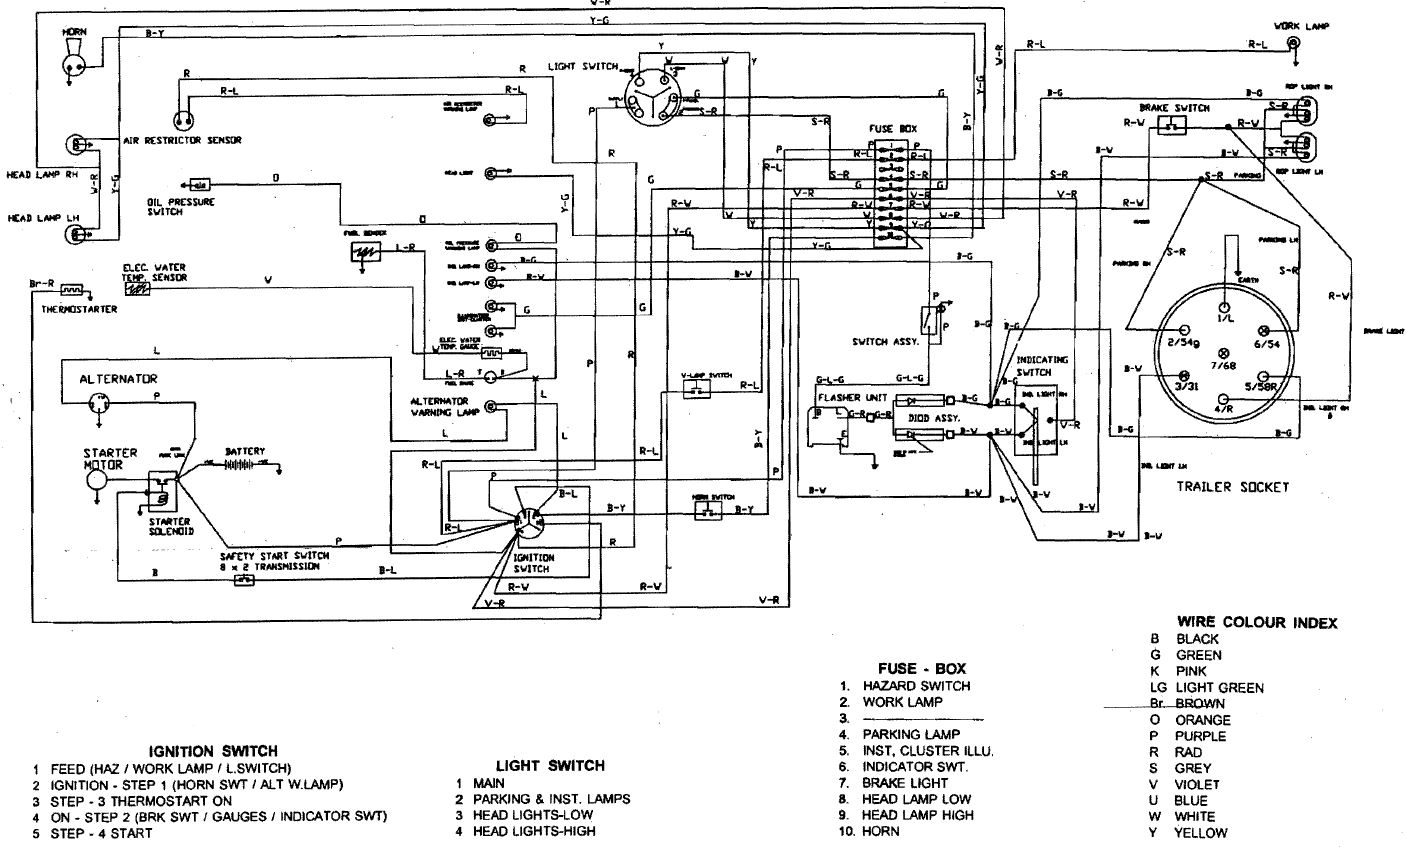 342658 Ignition Switch Wiring Diagram